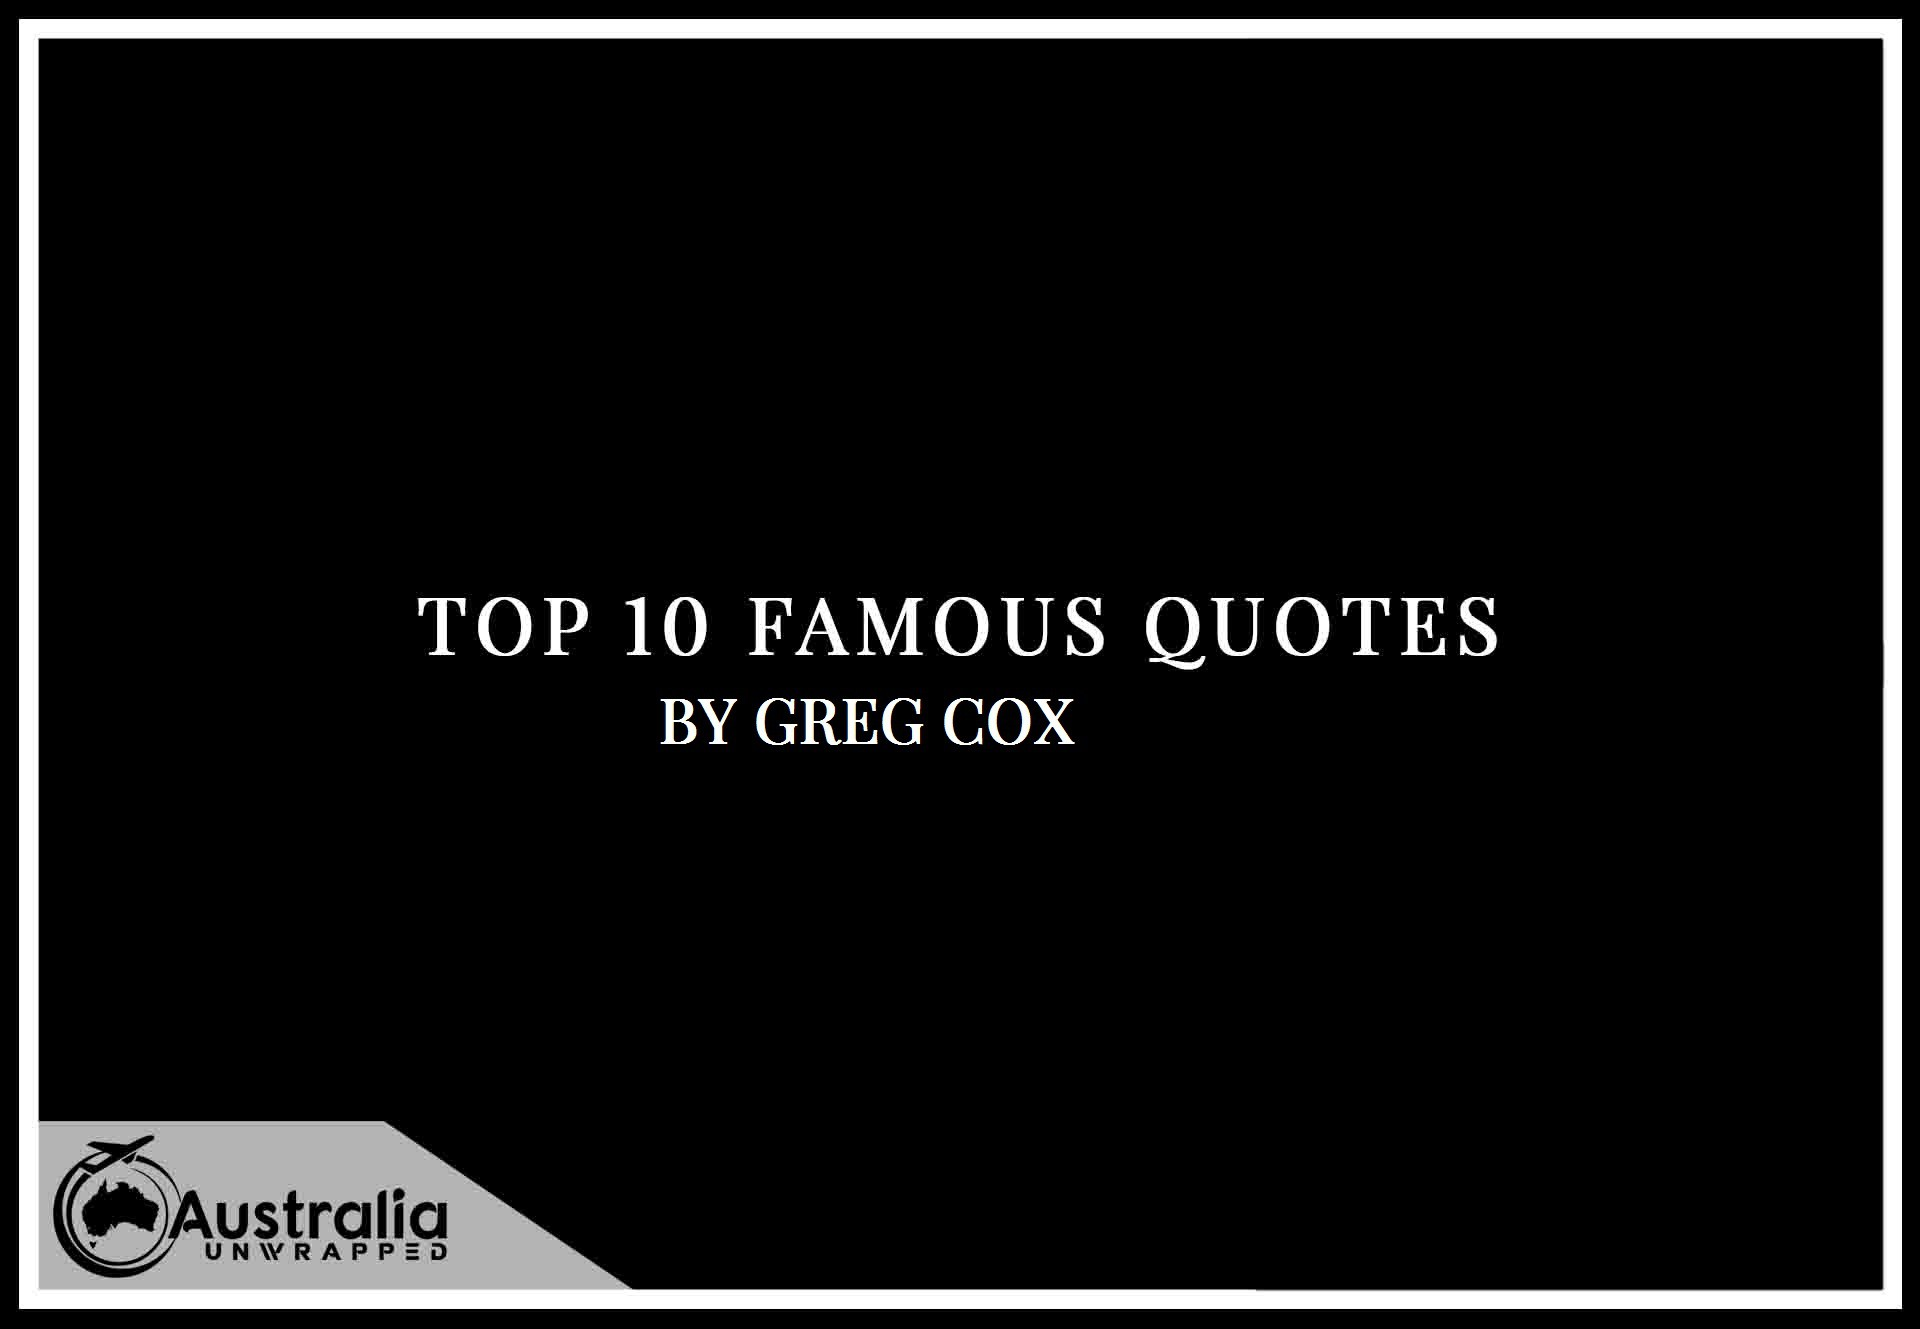 Greg Cox's Top 10 Popular and Famous Quotes